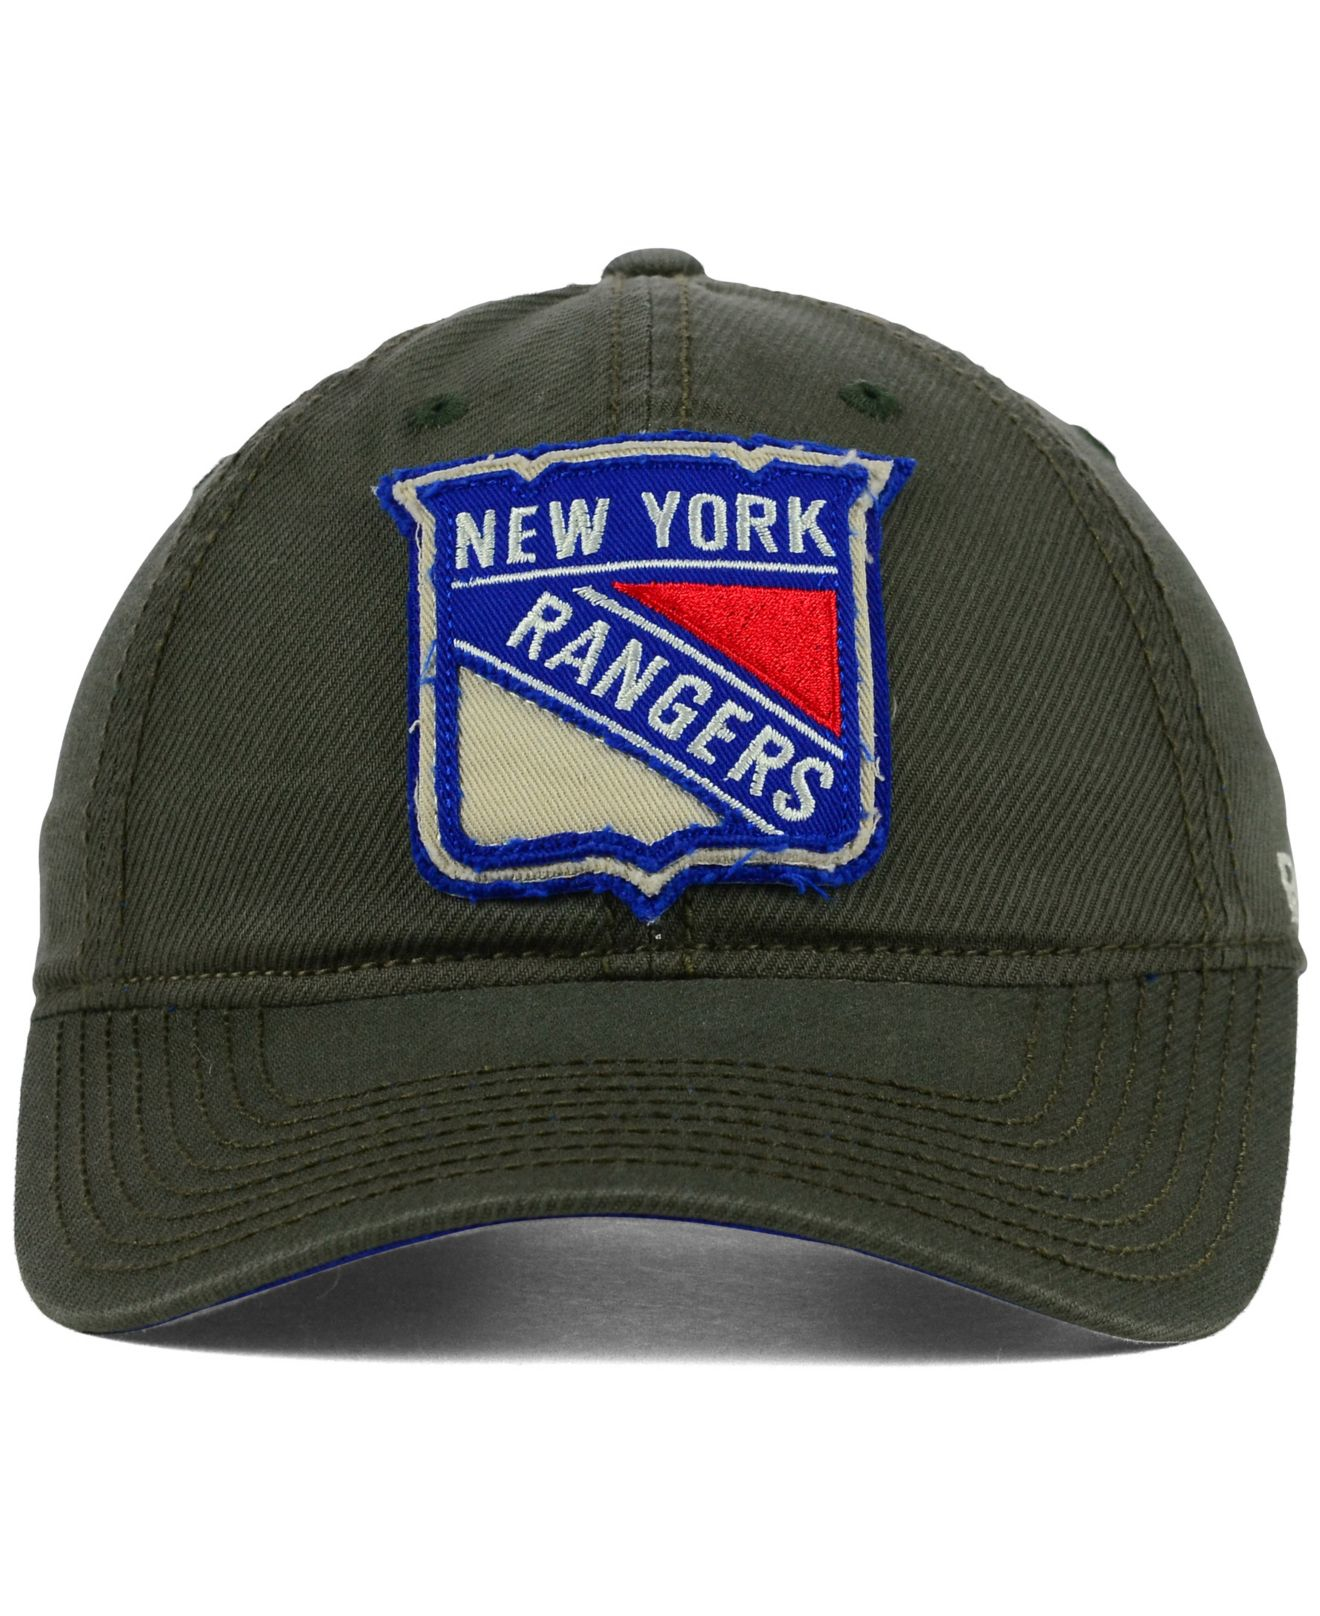 Lyst - Reebok New York Rangers Textured Slouch Cap in Green for Men 05cc5f538af